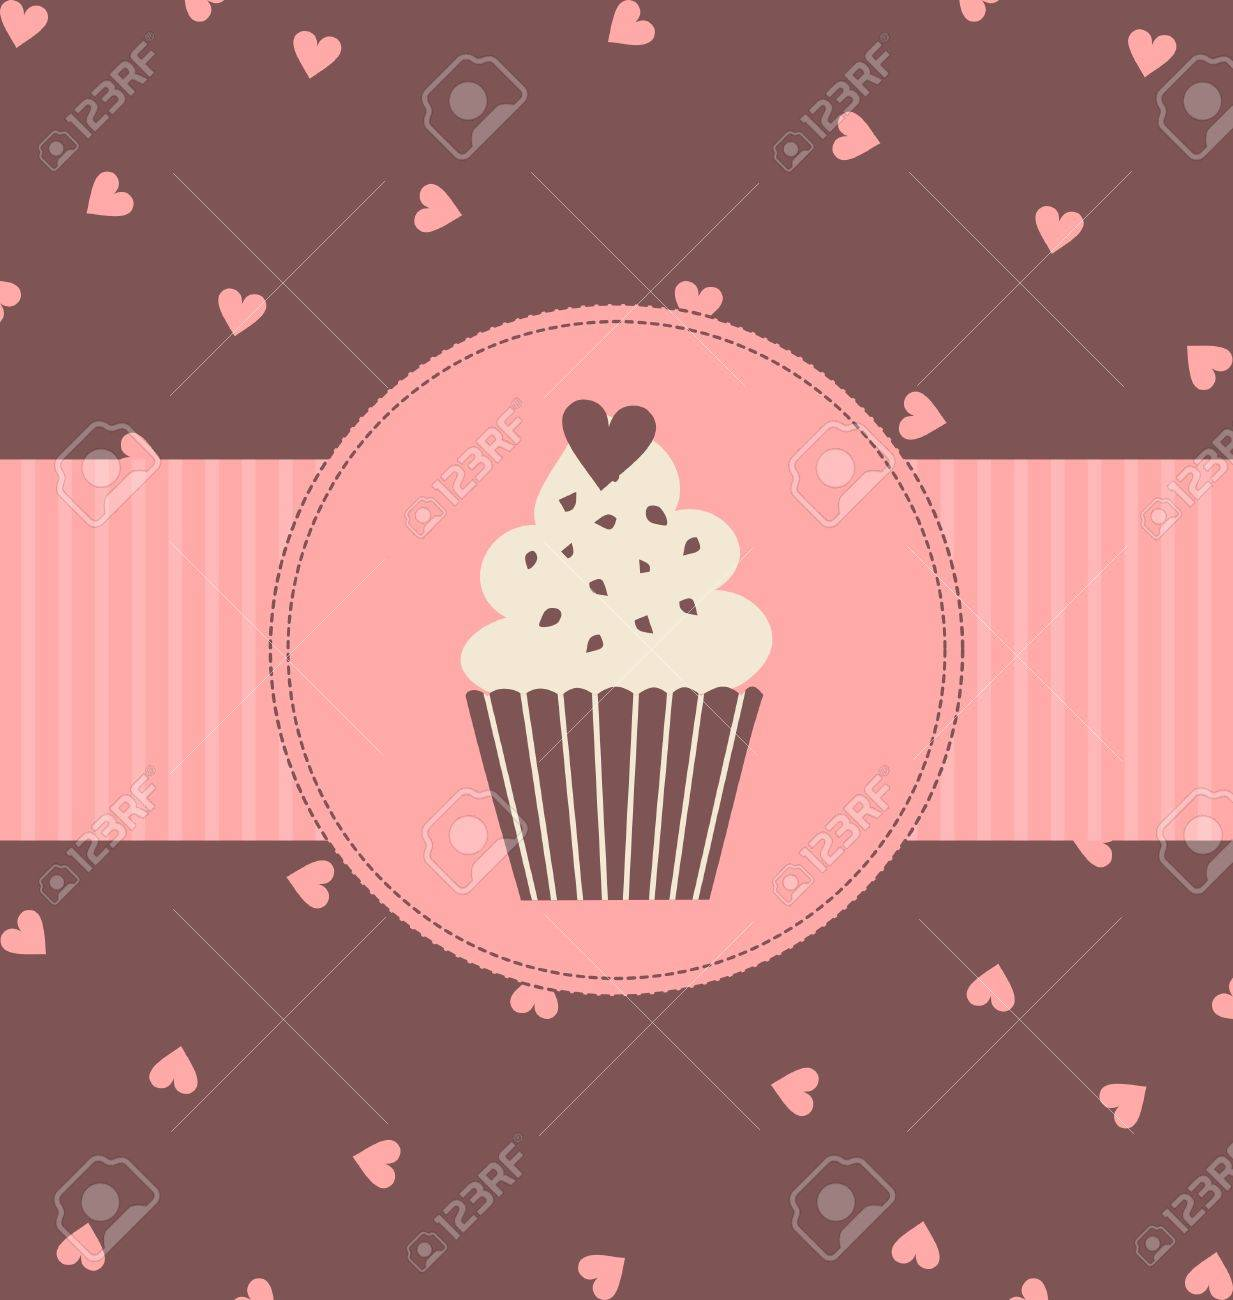 Illustration of a cute cupcake in pastel pink and brown colors. Stock Vector - 13319214